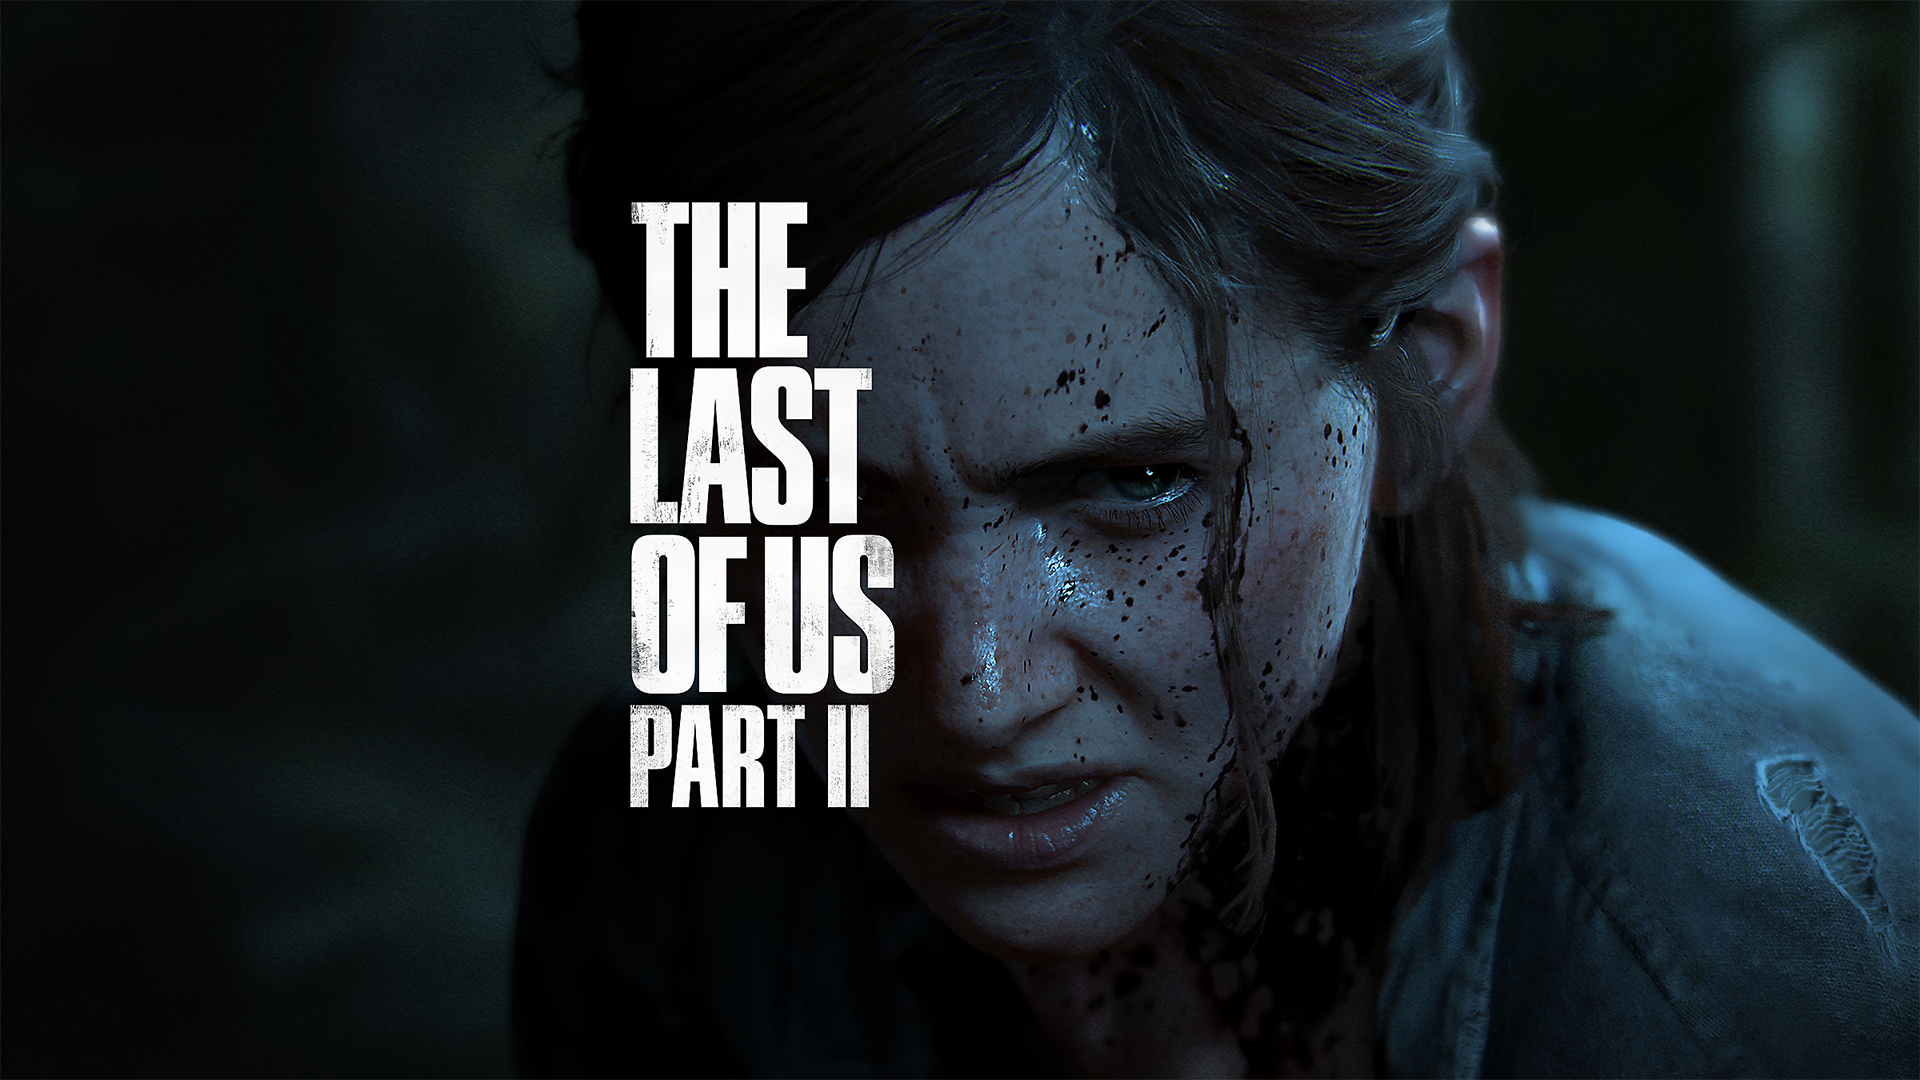 the last of us part 2 análise review crítica